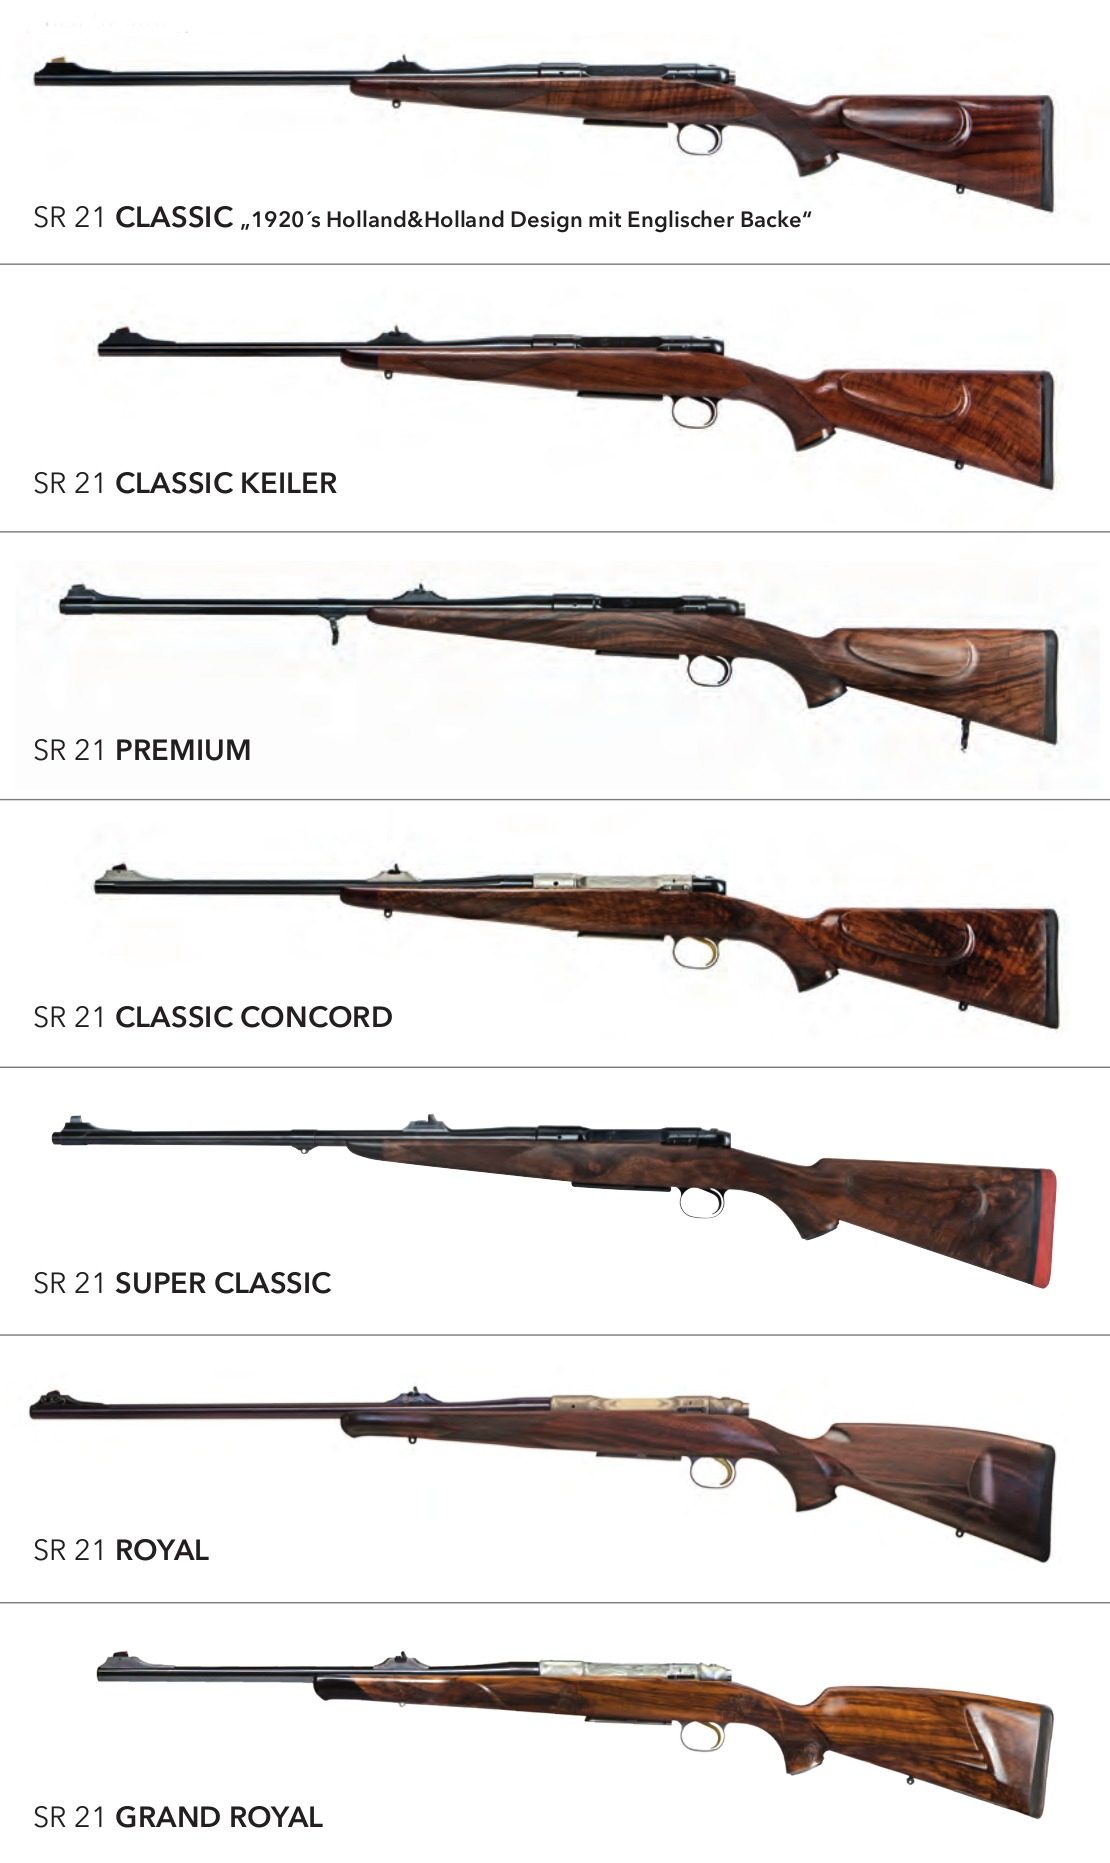 Heym SR21 sporting rifle model range